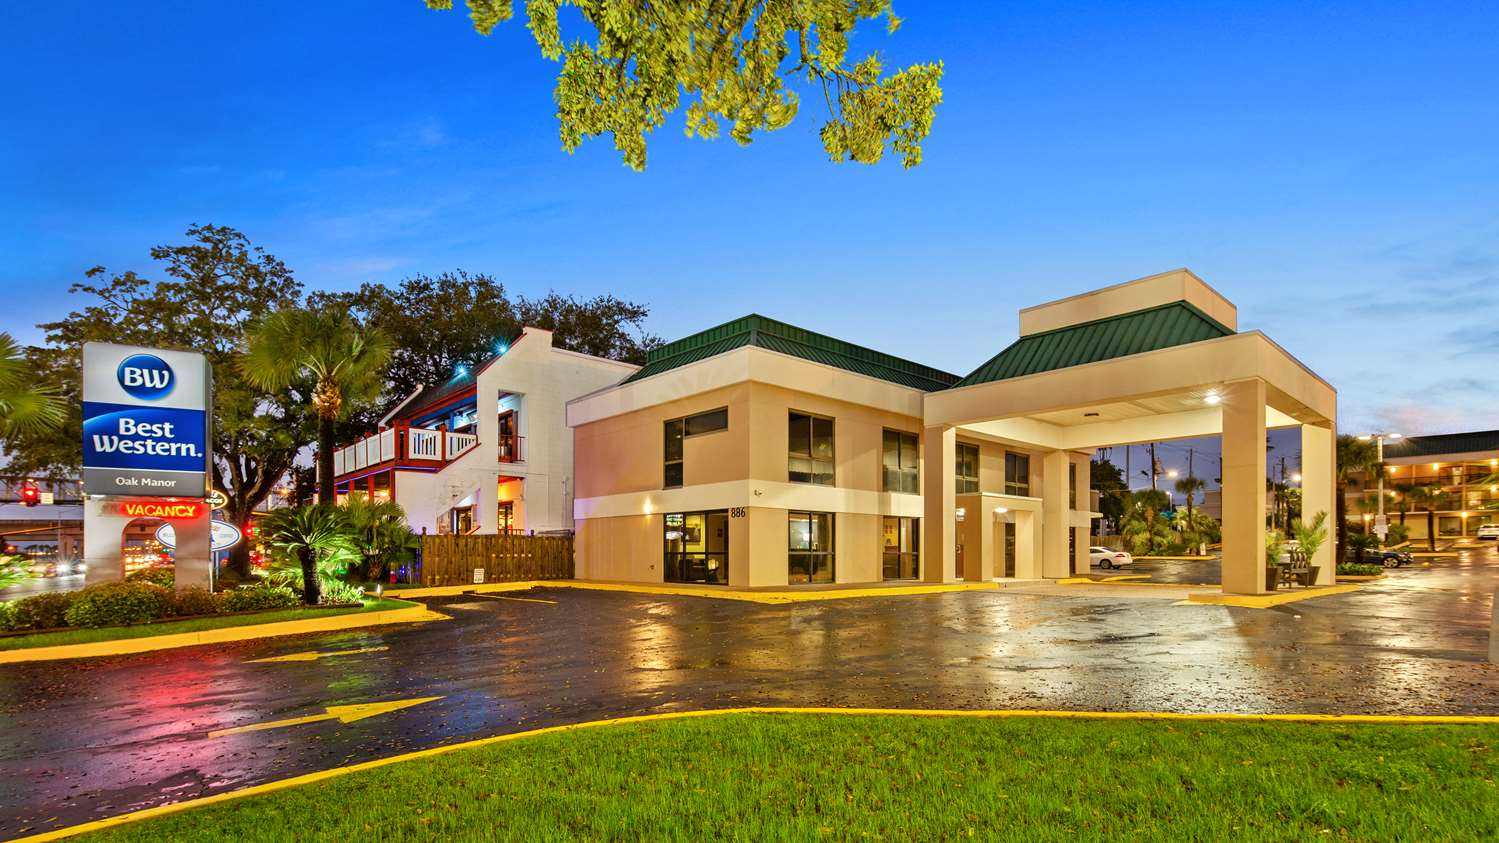 Biloxi Hotels Best Western Oak Manor Biloxi Casino Hotels